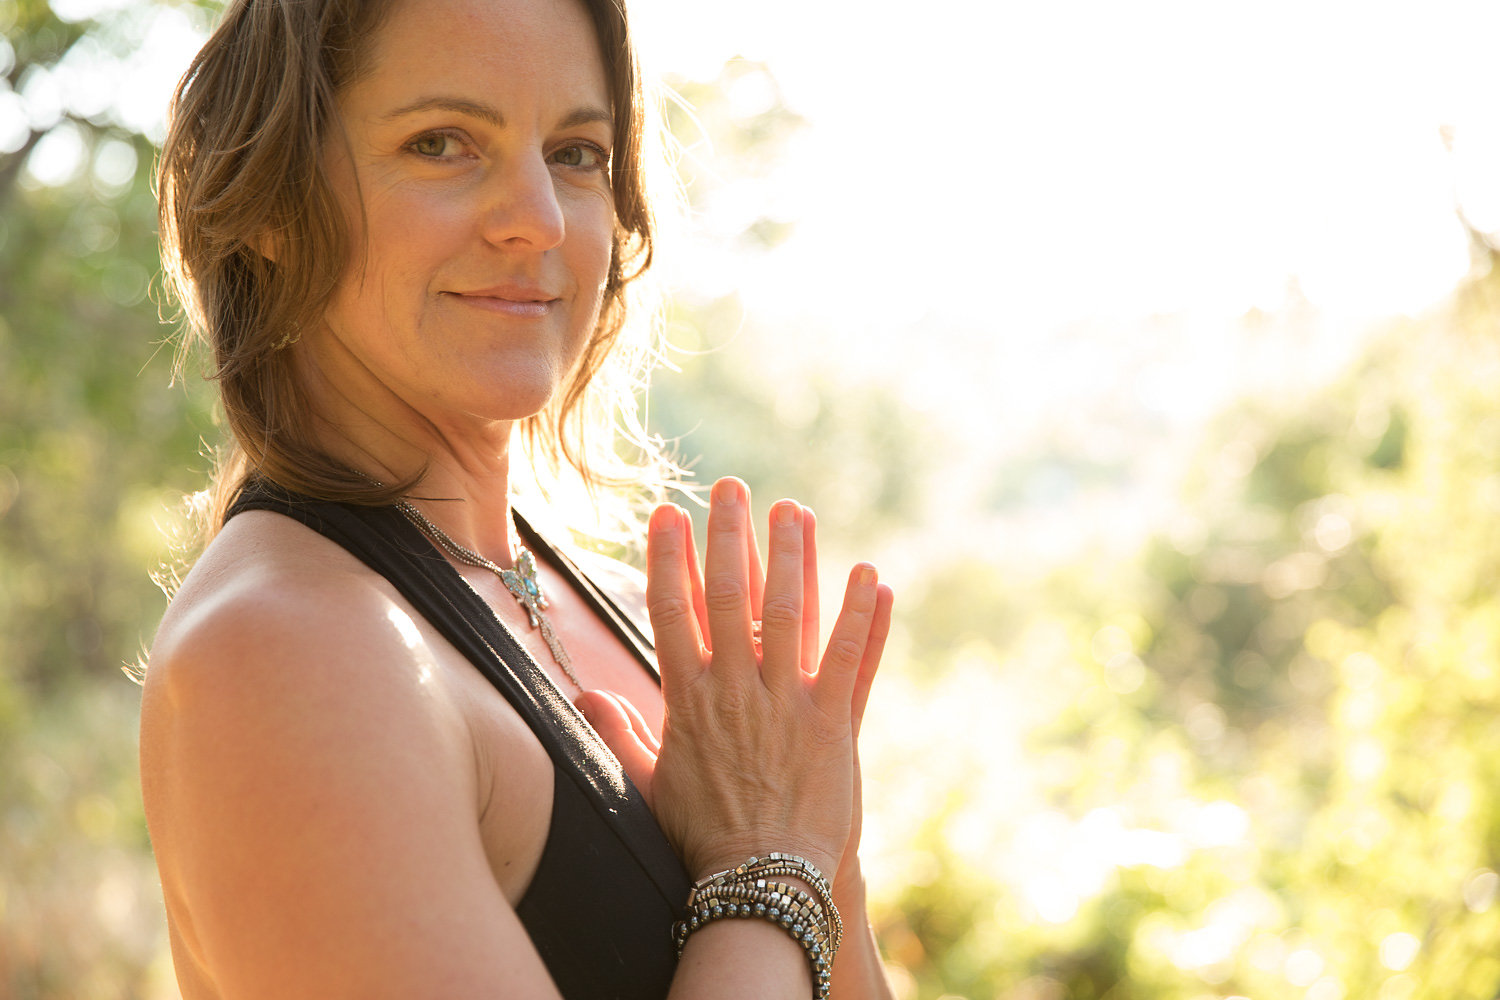 Ranya's keen ability to guide executives into productive rest draws on 25 years of yoga and mindfulness mastery in a wide variety of restorative-focused modalities.